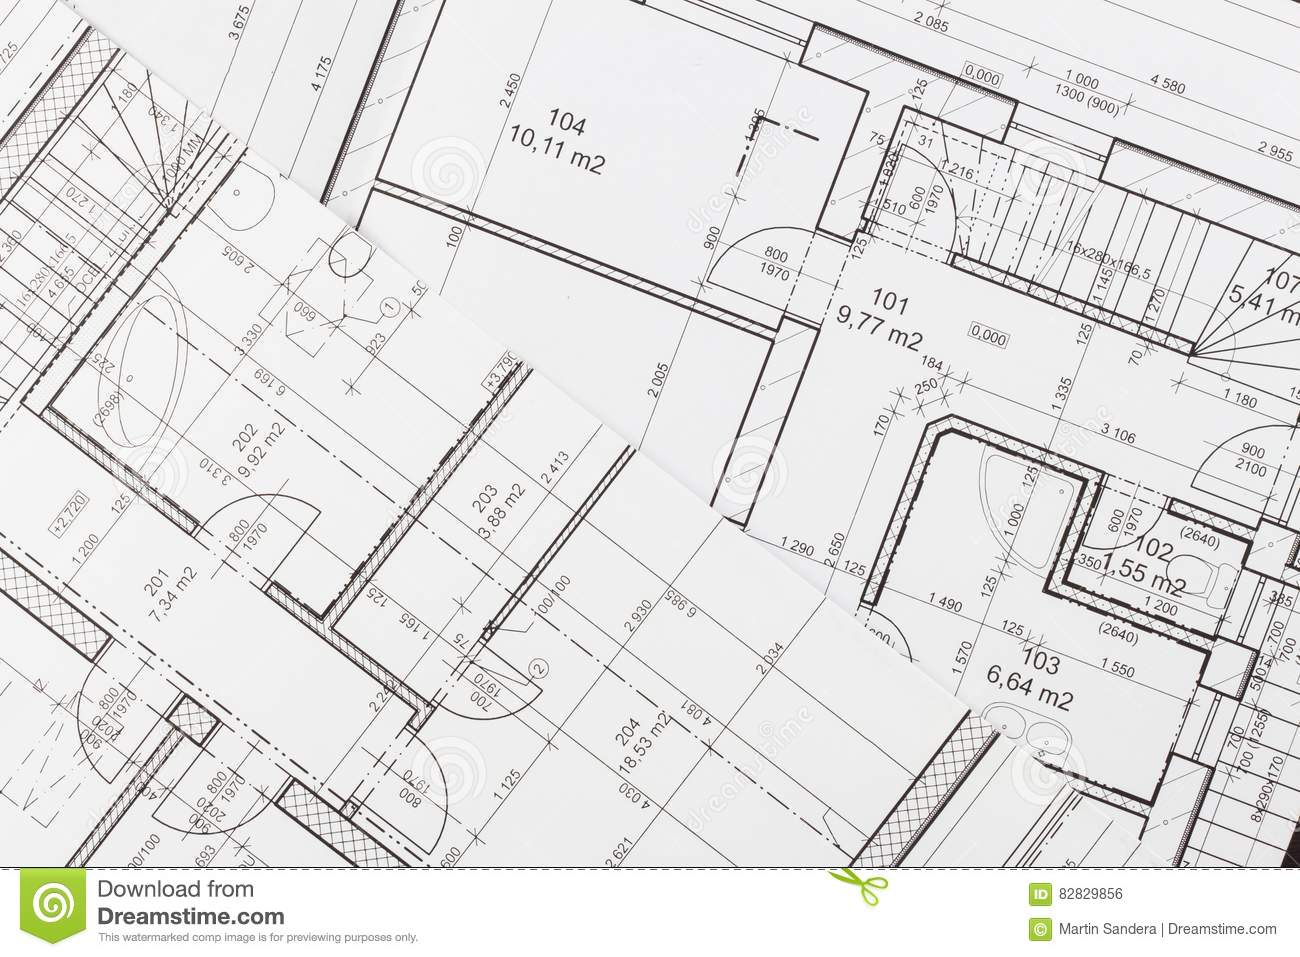 Plans of building architectural project floor plan designed building on the drawing